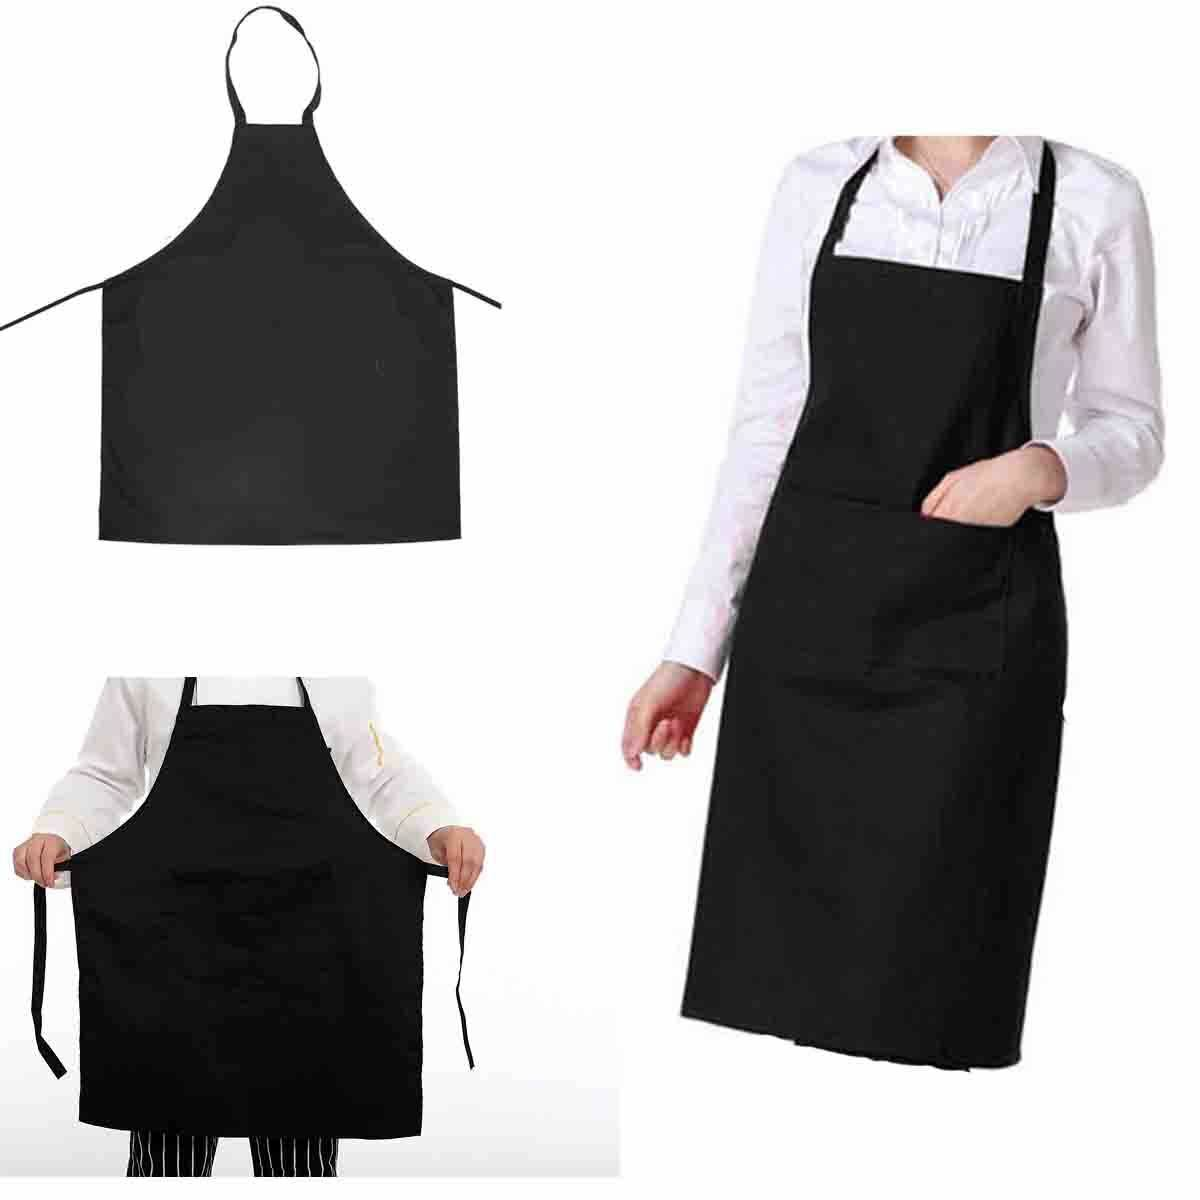 Details About Chef Apron Catering Cooking Kitchen Butcher Unisex With Pocket